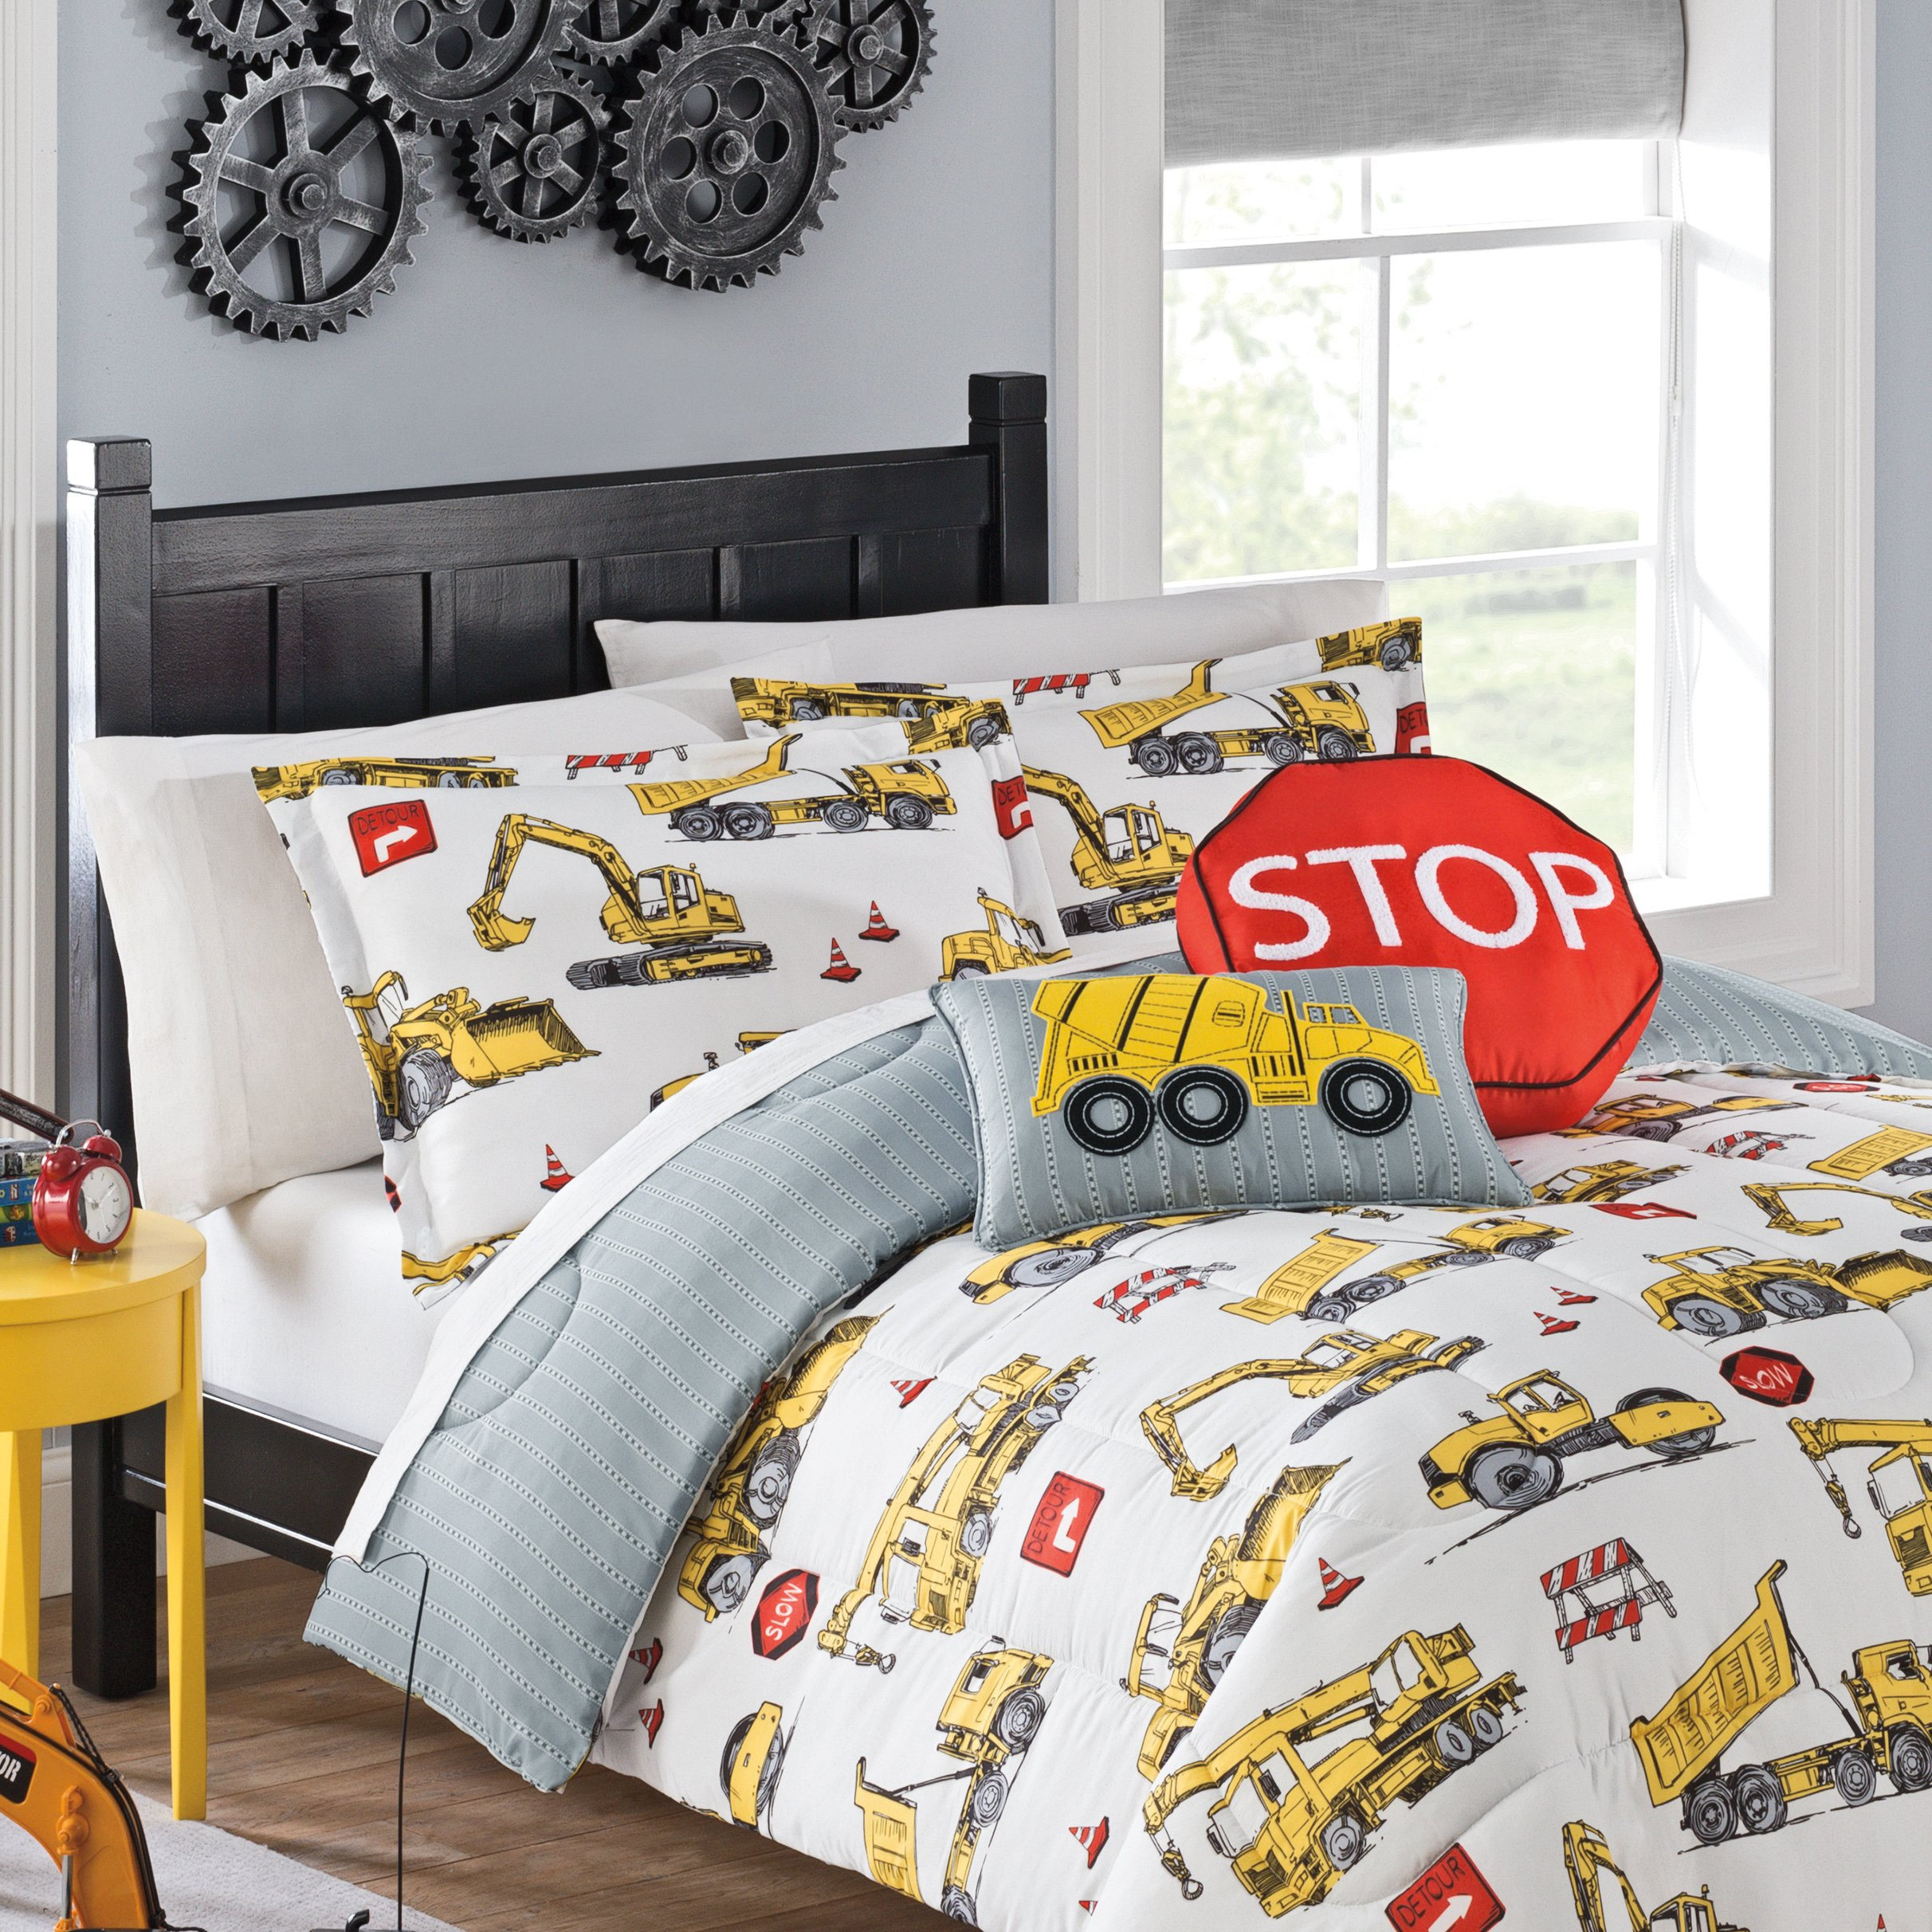 WAVERLY Kids Under Under Construction Reversible Bedding Collection, Full/Queen, Multicolor by WAVERLY (Image #3)